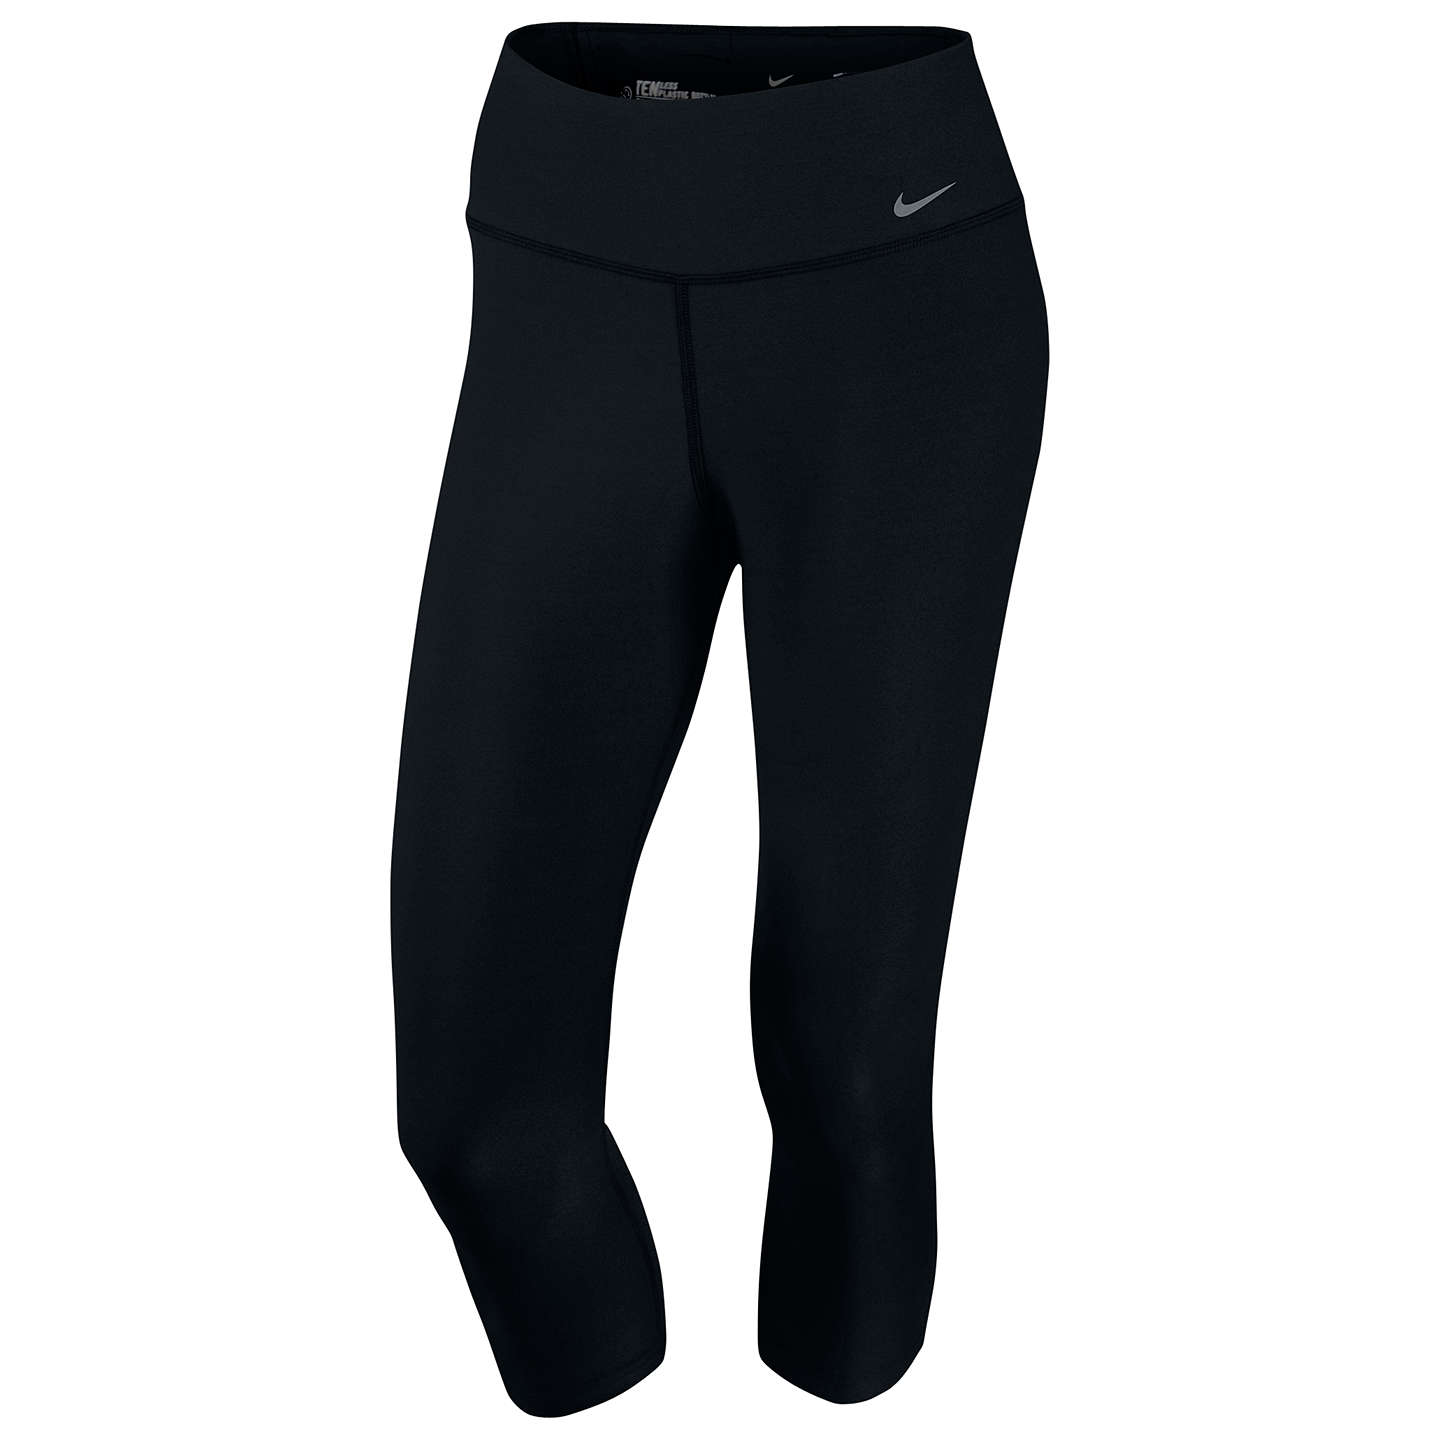 Women's Nike Legend 2.0 Fold-Over Waistband - Training Tights LO555631n